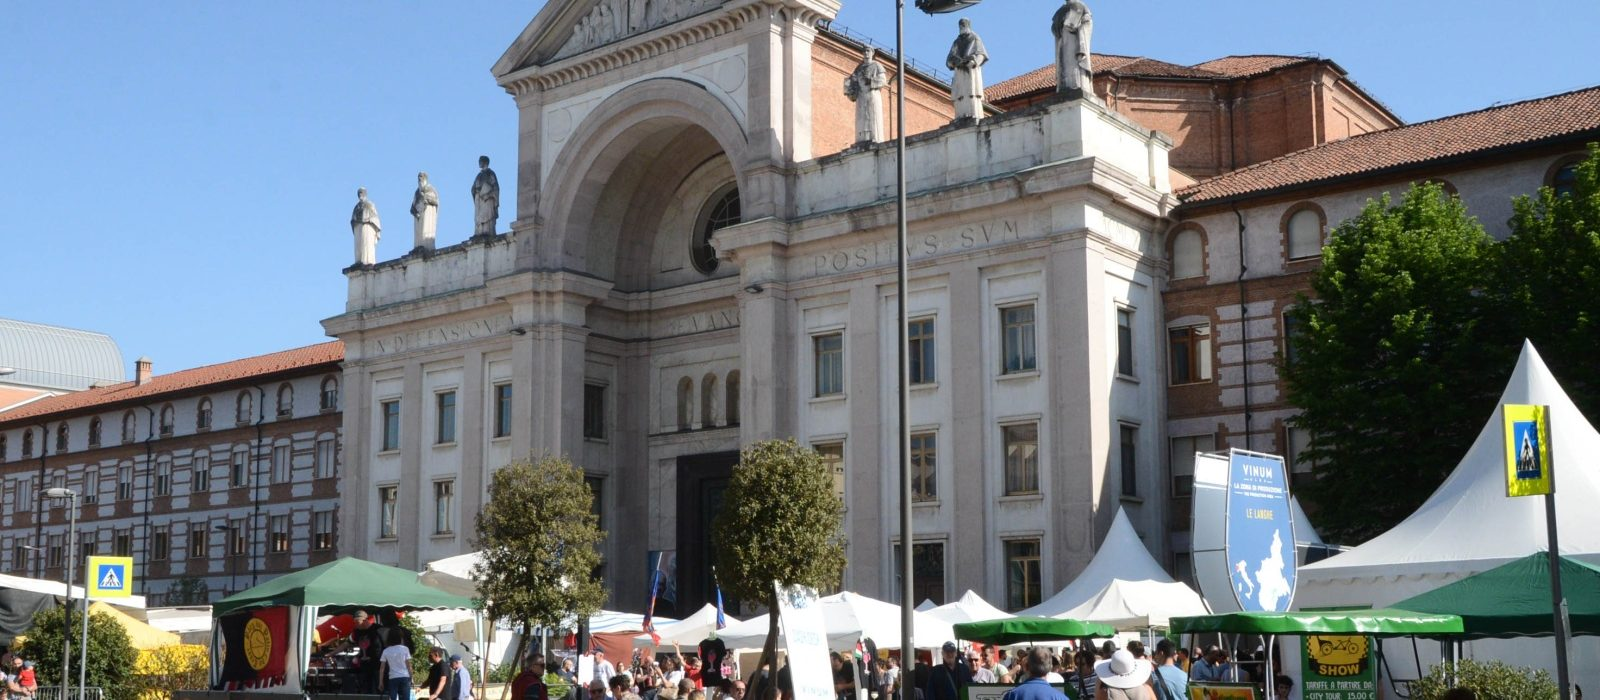 Piazza San Paolo in Vinum